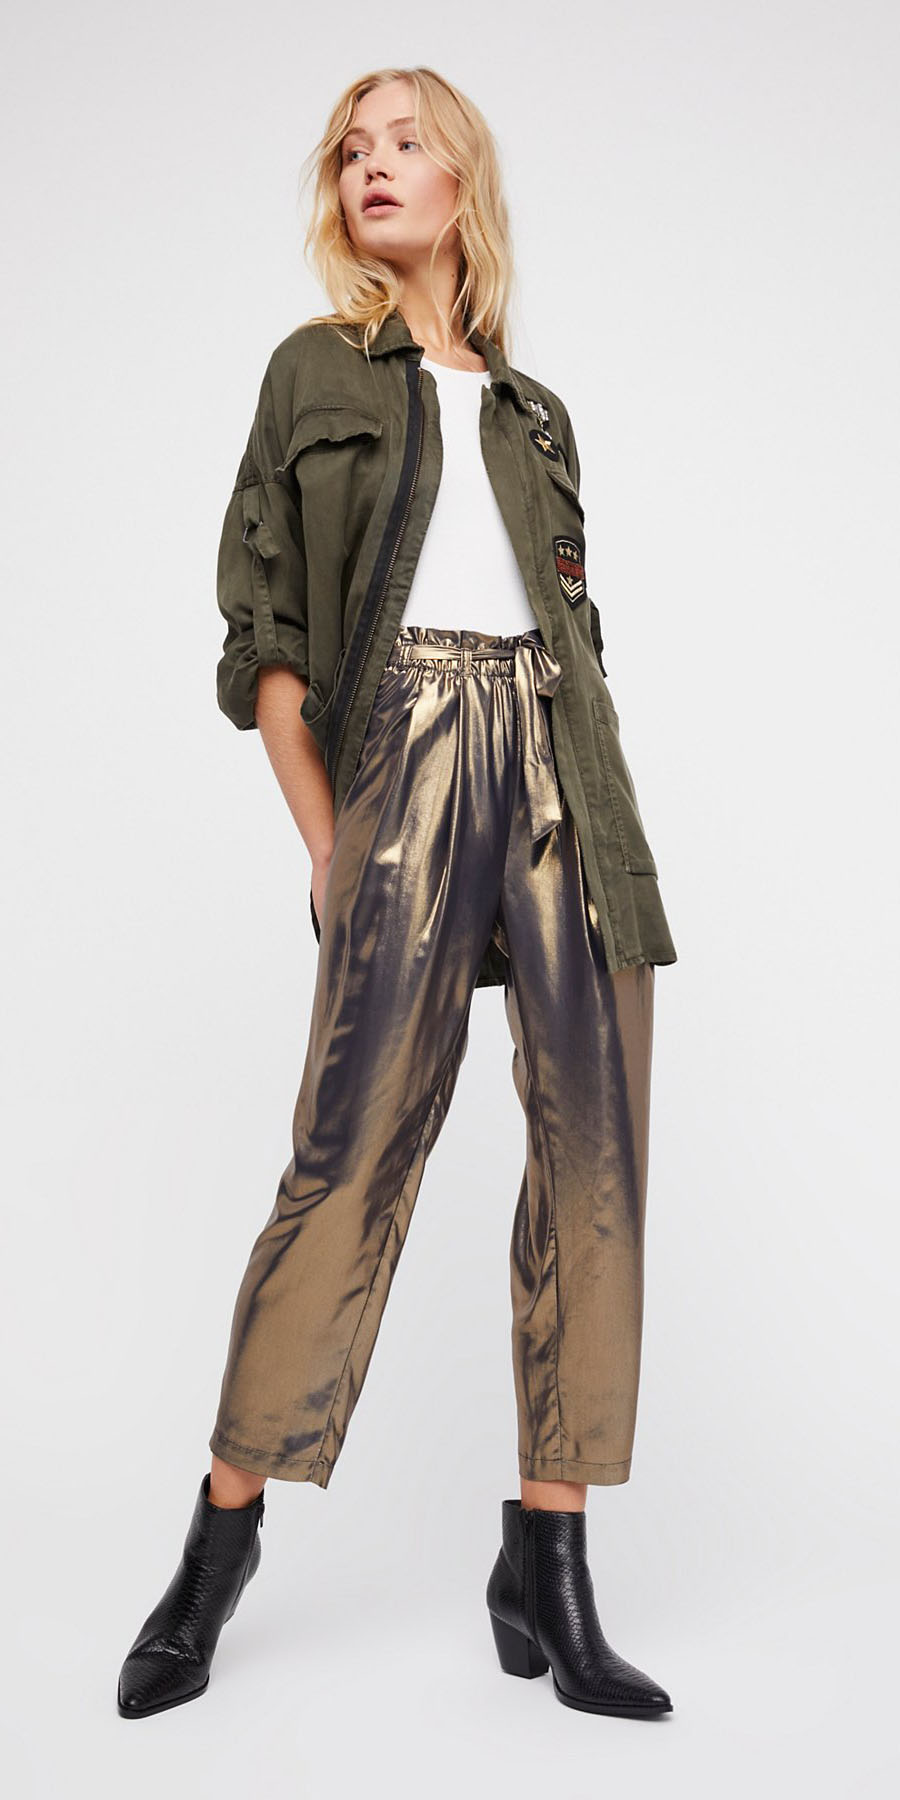 tan-joggers-pants-gold-white-tee-green-olive-jacket-utility-blonde-black-shoe-booties-metallic-fall-winter-lunch.jpg